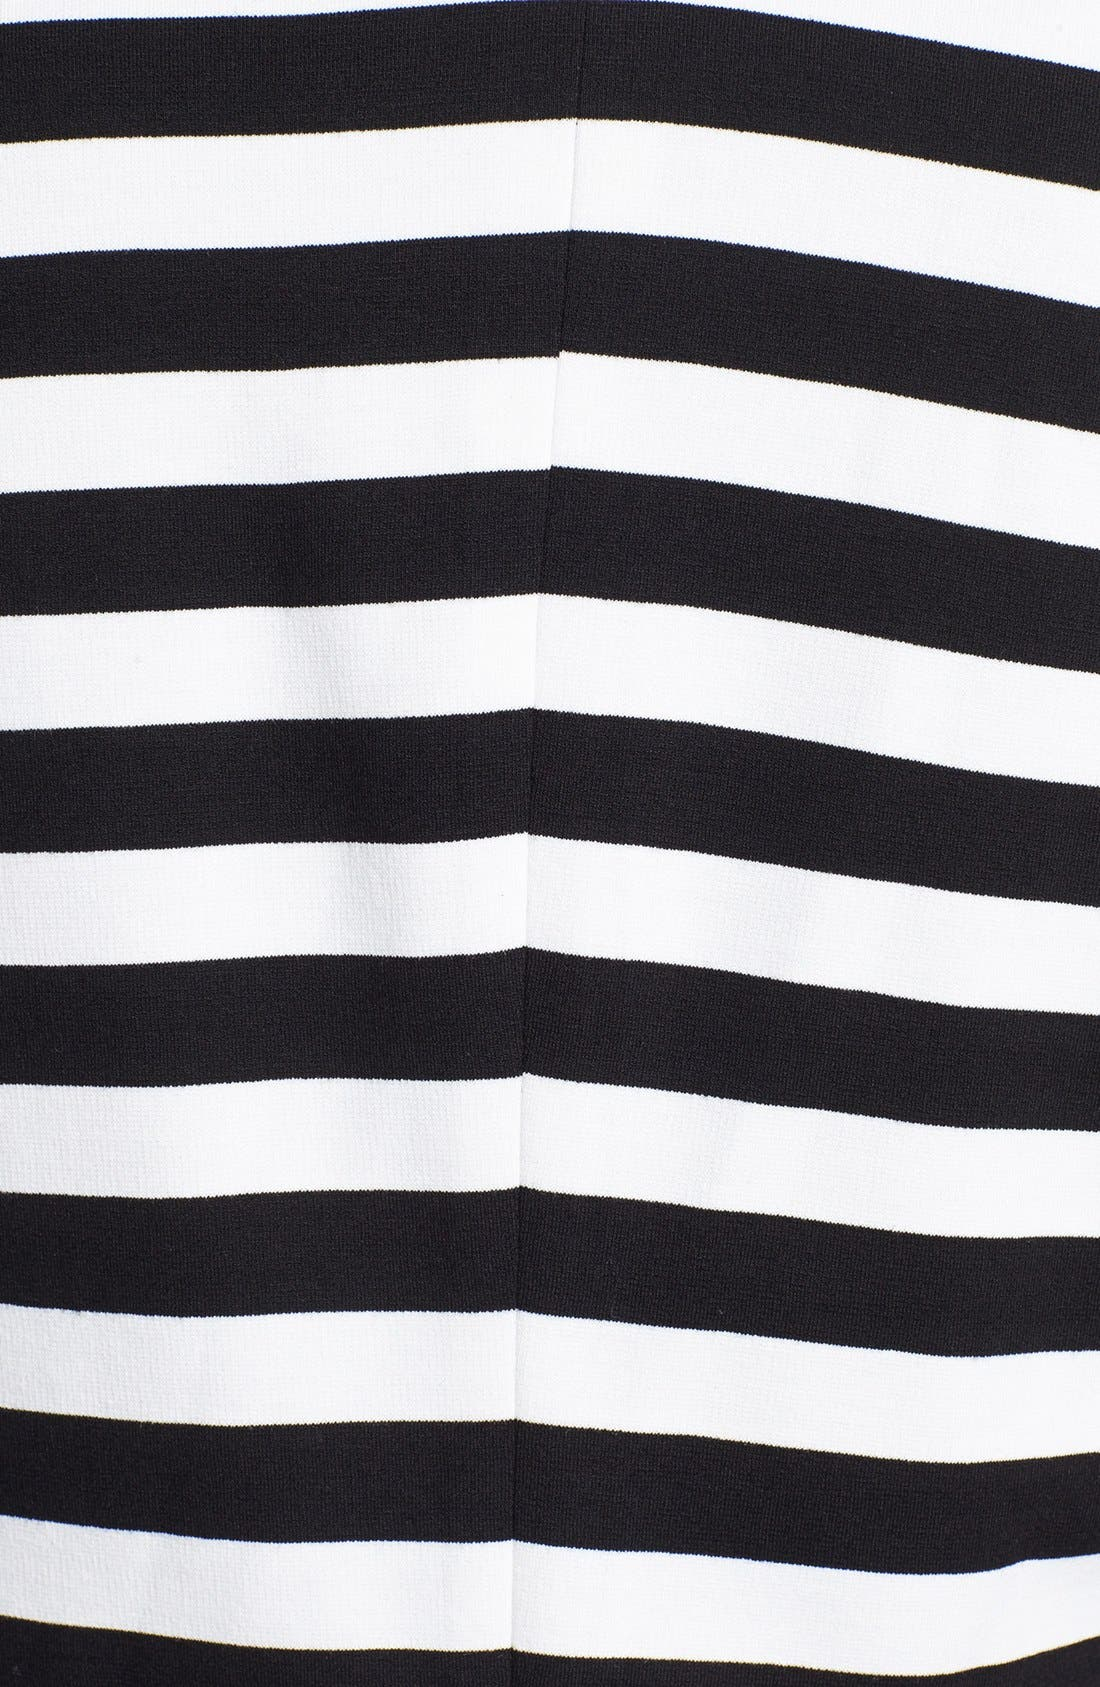 Stripe Ponte Blazer,                             Alternate thumbnail 3, color,                             Black/ White Stripe